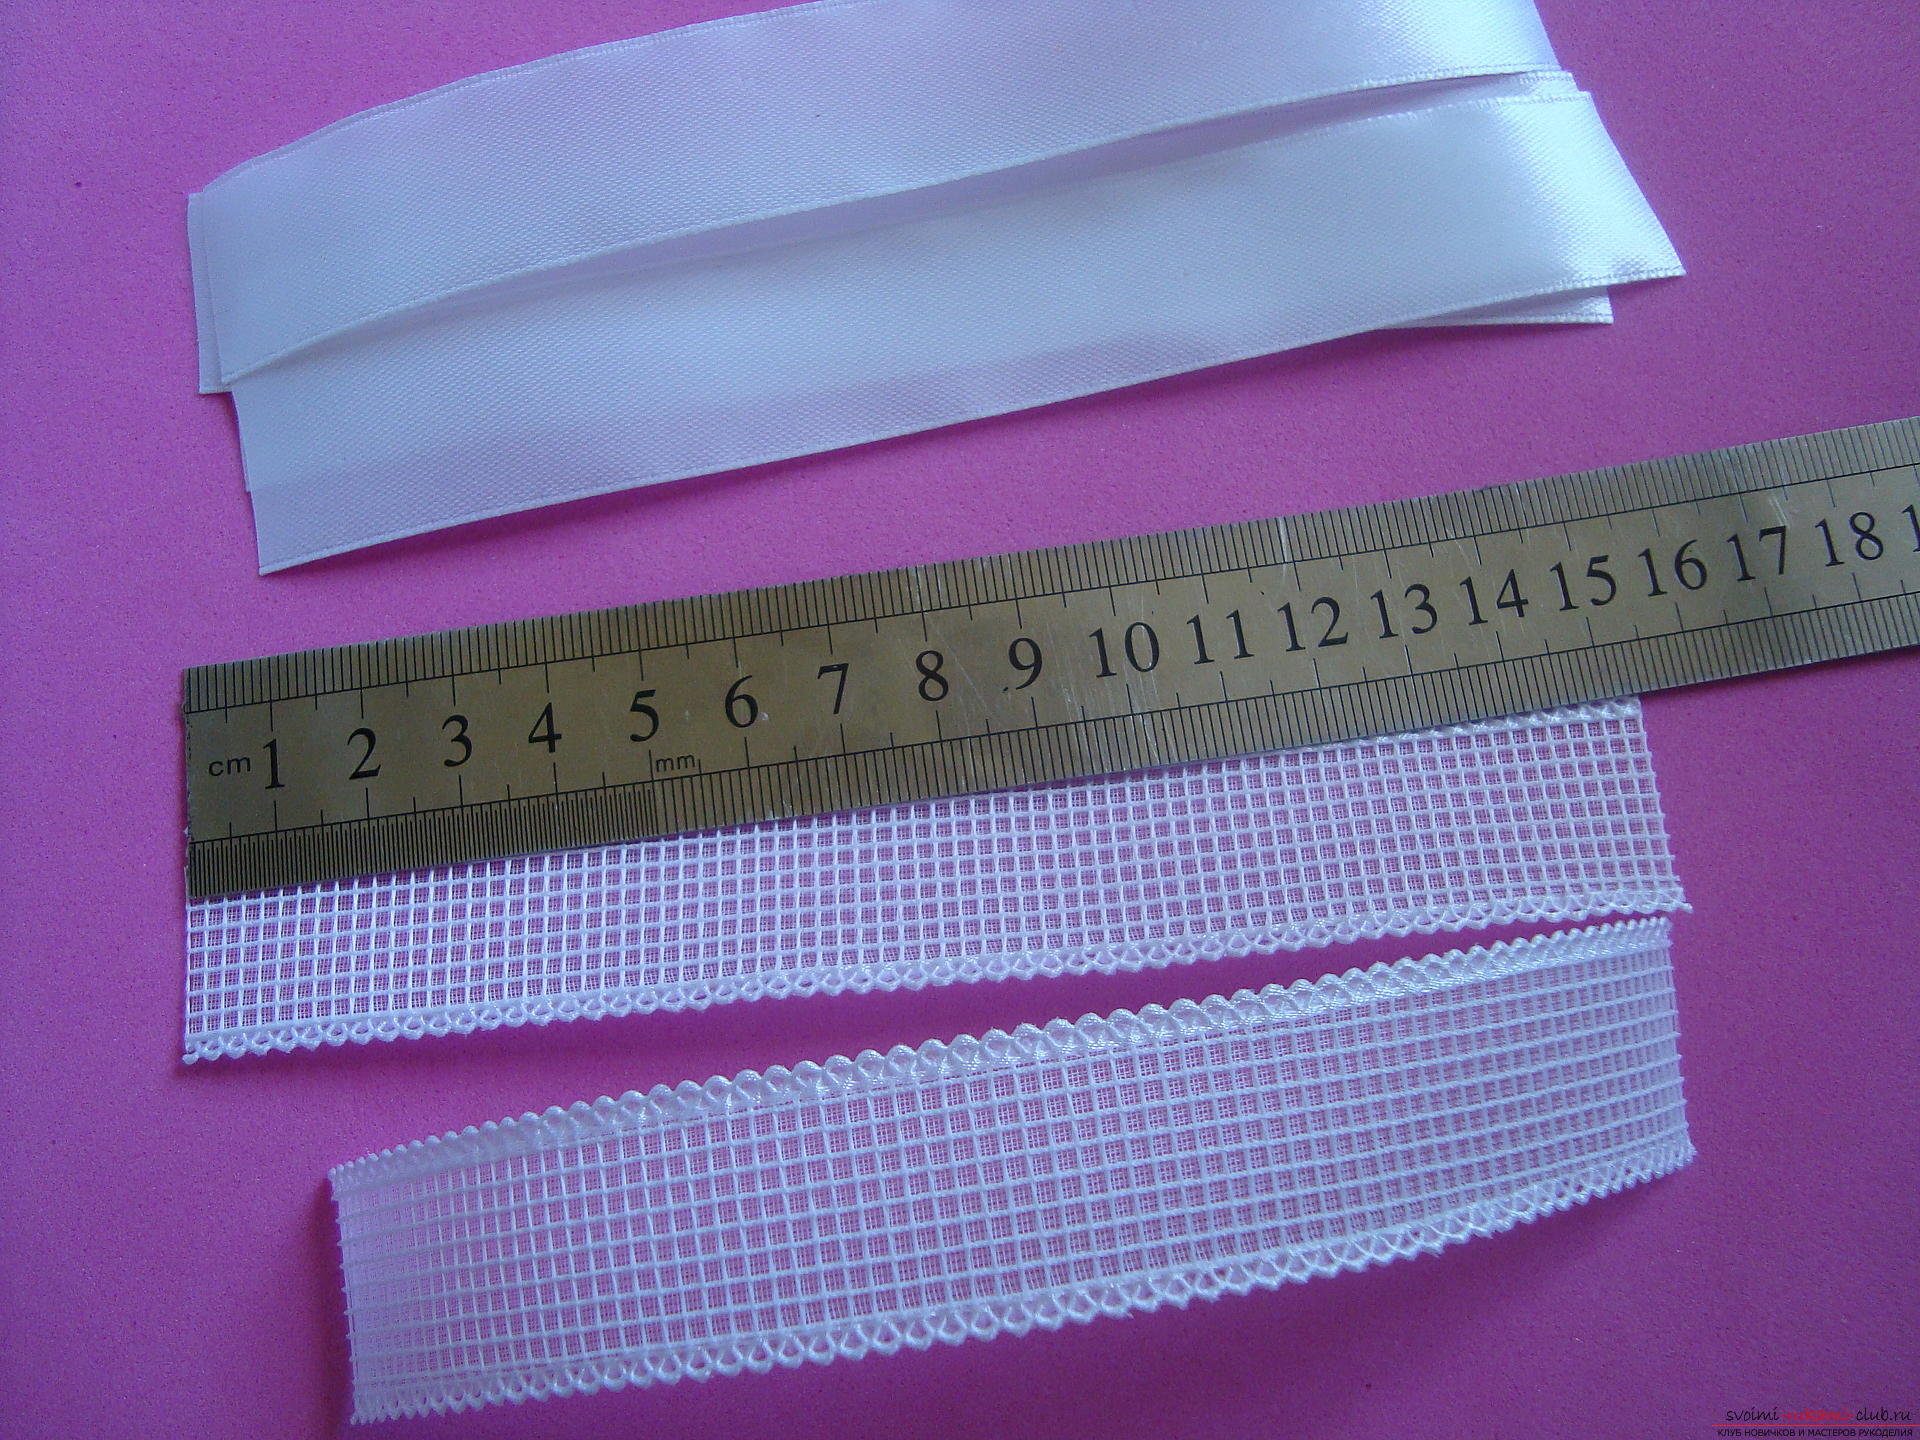 Step-by-step guide to making bows by September 1 for schoolgirls describing the steps and photos. Picture №3